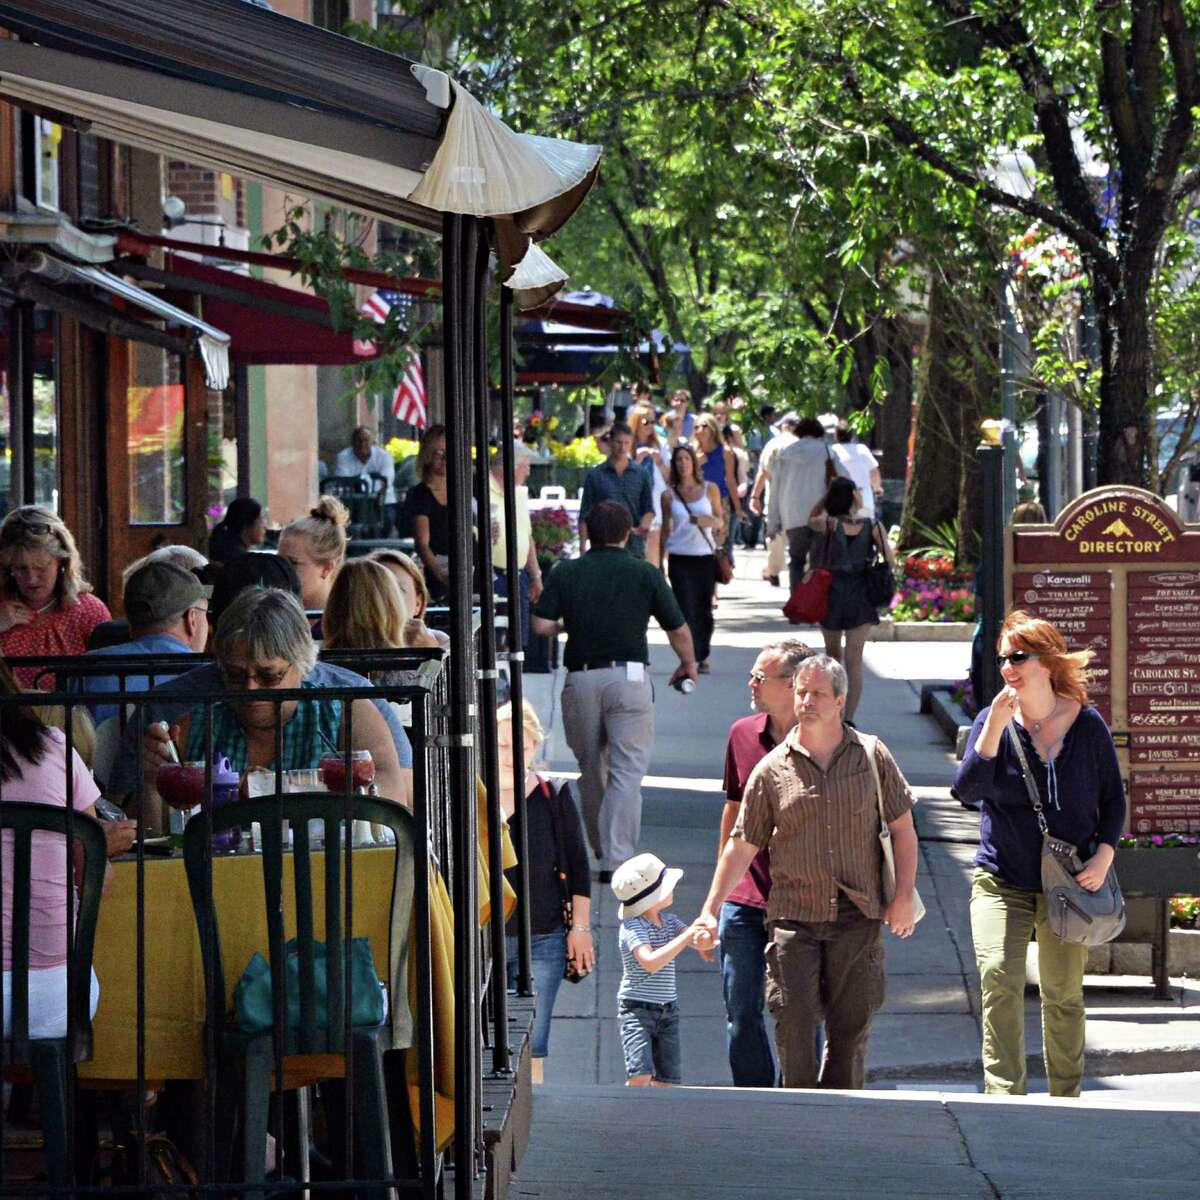 A crowded sidewalk along Broadway Thursday June 19, 2014, in Saratoga Springs, NY. (John Carl D'Annibale / Times Union)